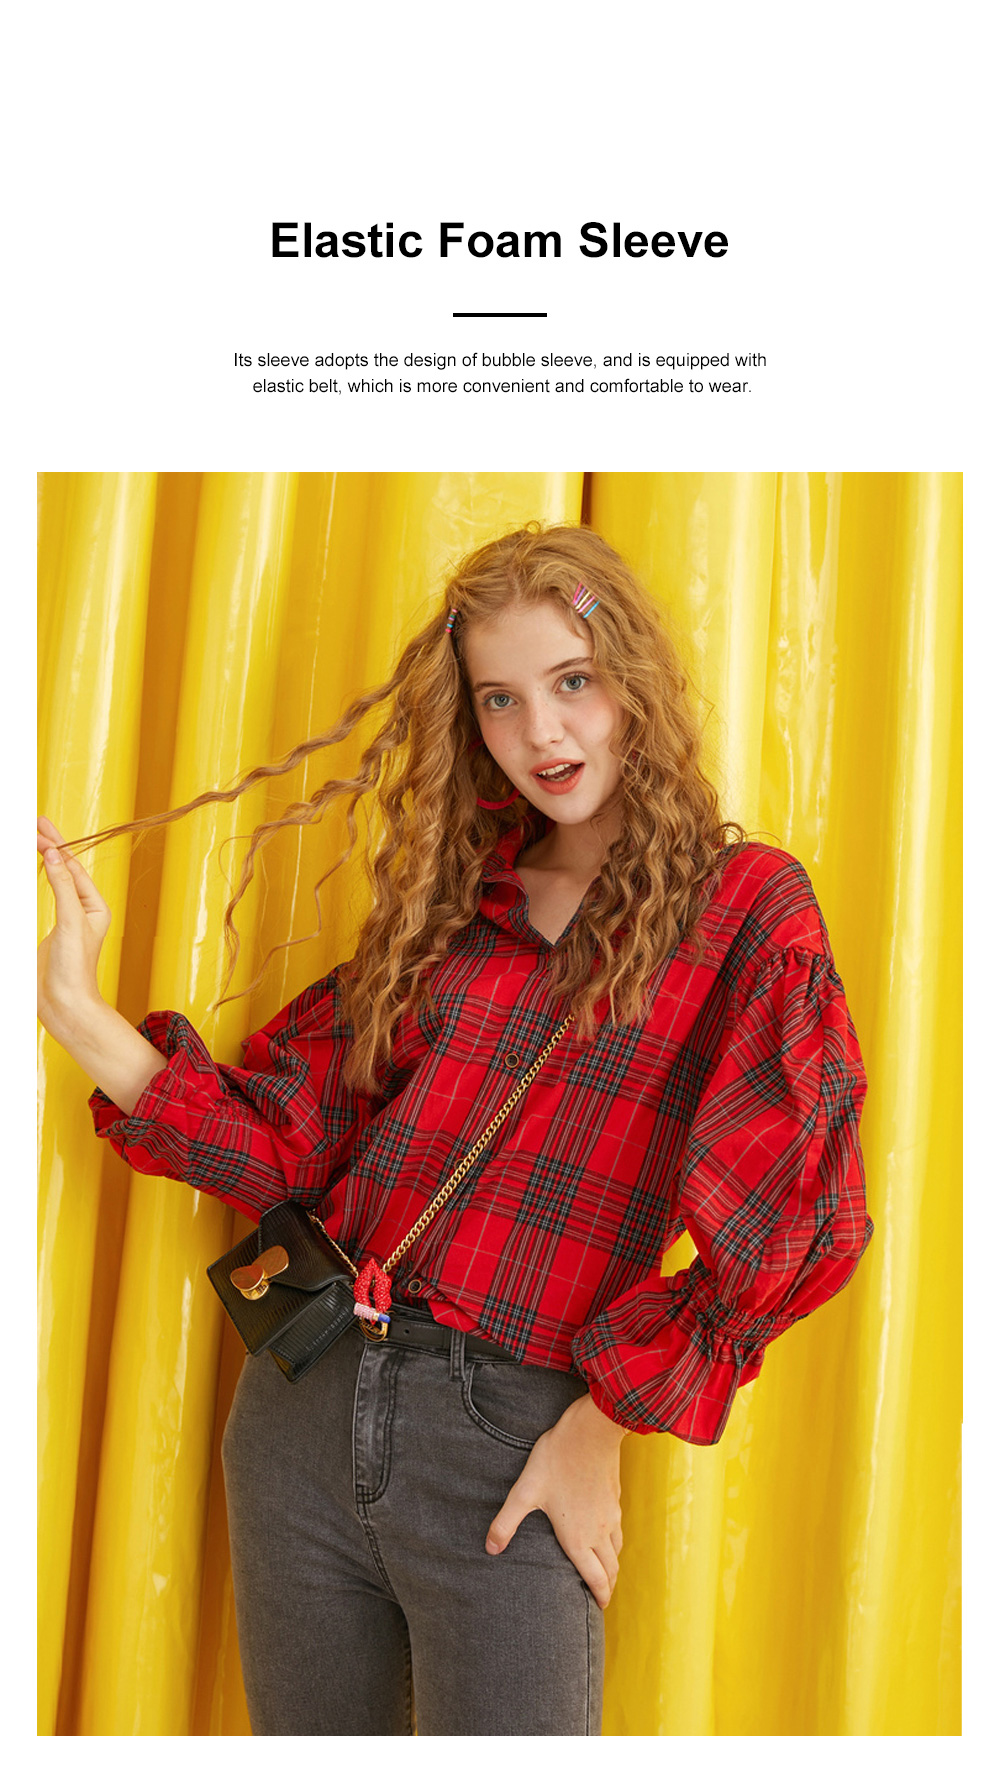 ELF SACK Plaid Shirt for Women Retro Style Women's Shirt New Korean Student Bubble Sleeve Top 2019 New 3